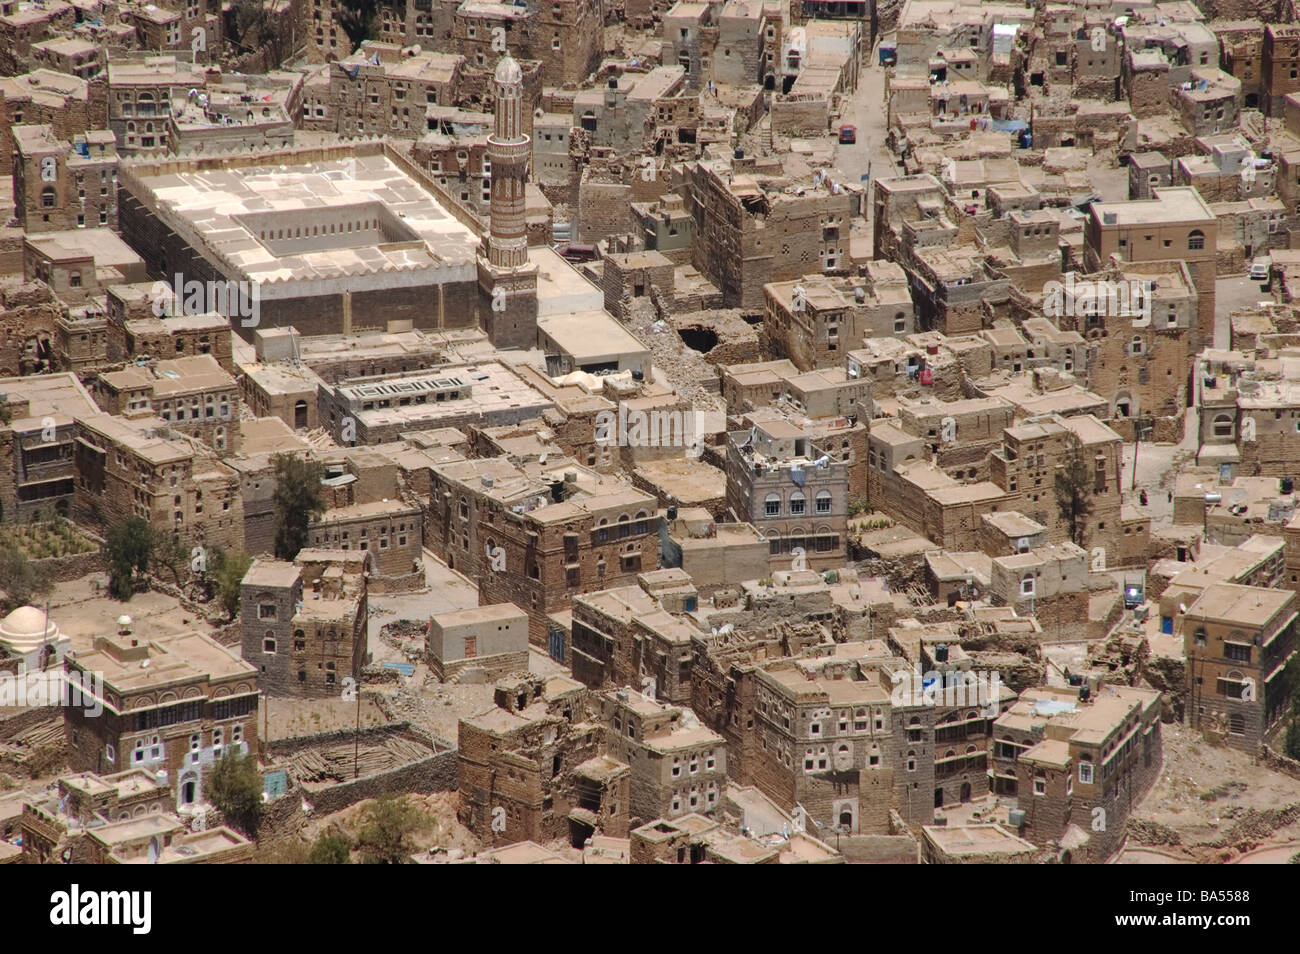 The village of Shibam as seen above from mountain town of Kawkaban, Yemen. - Stock Image